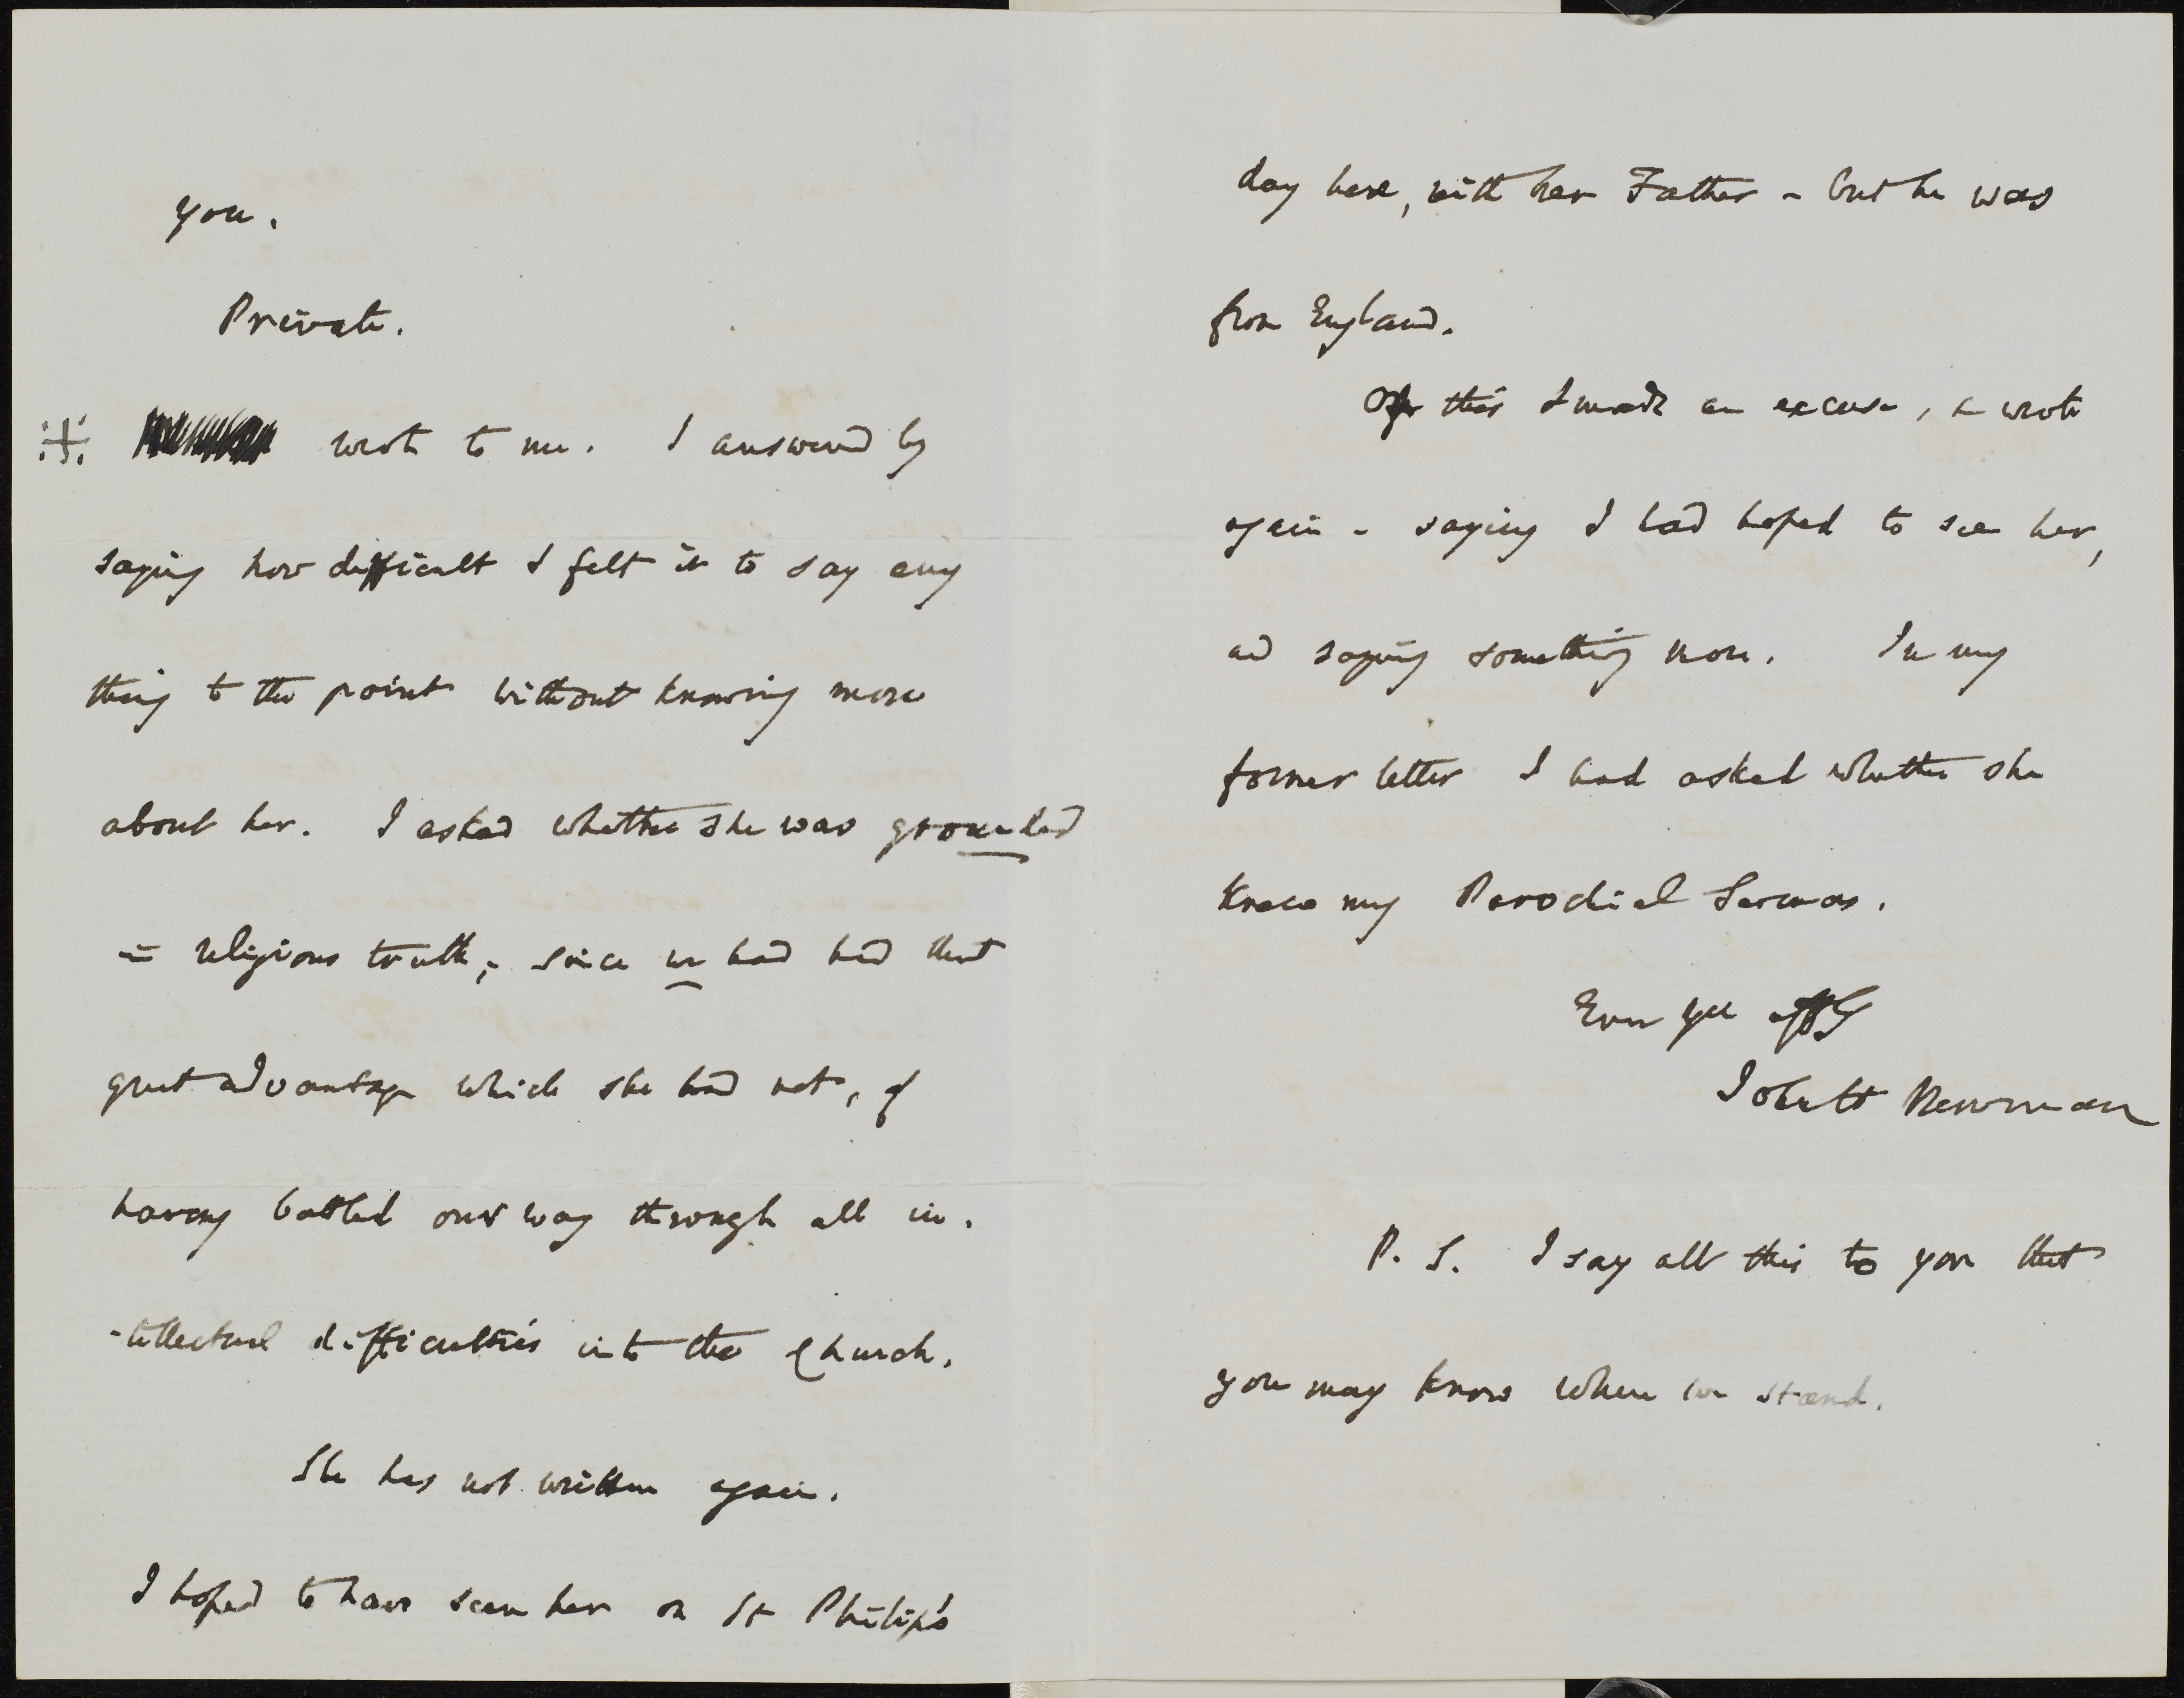 NEWMAN LETTER ENGLISH